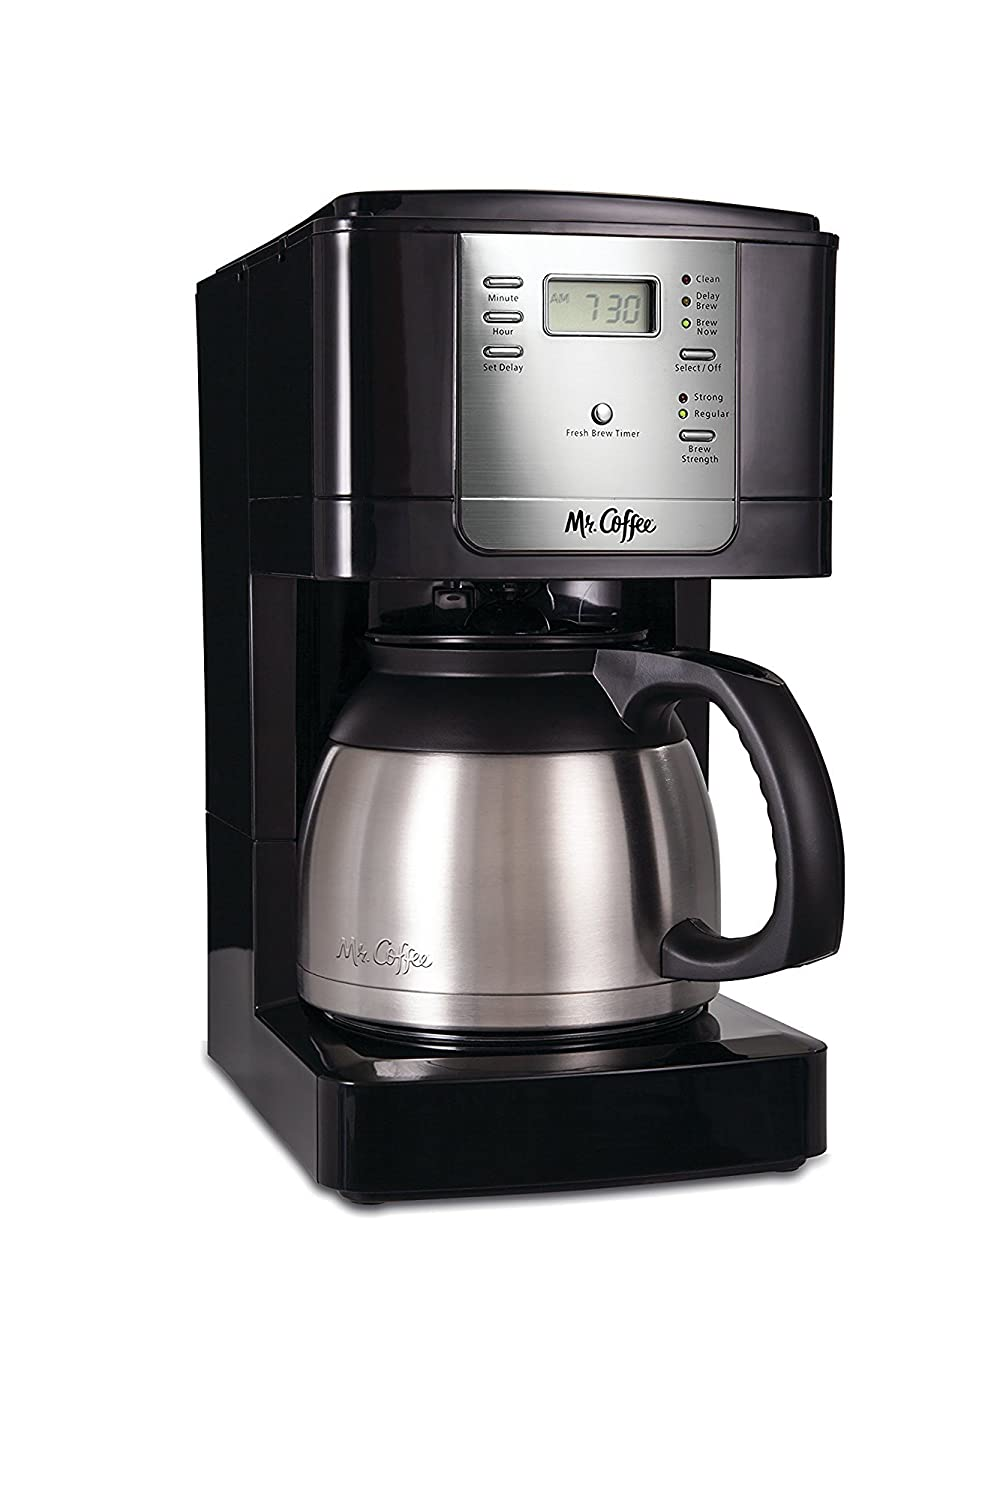 Mr. Coffee JWTX85 8-Cup Thermal Coffeemaker, Stainless Steel